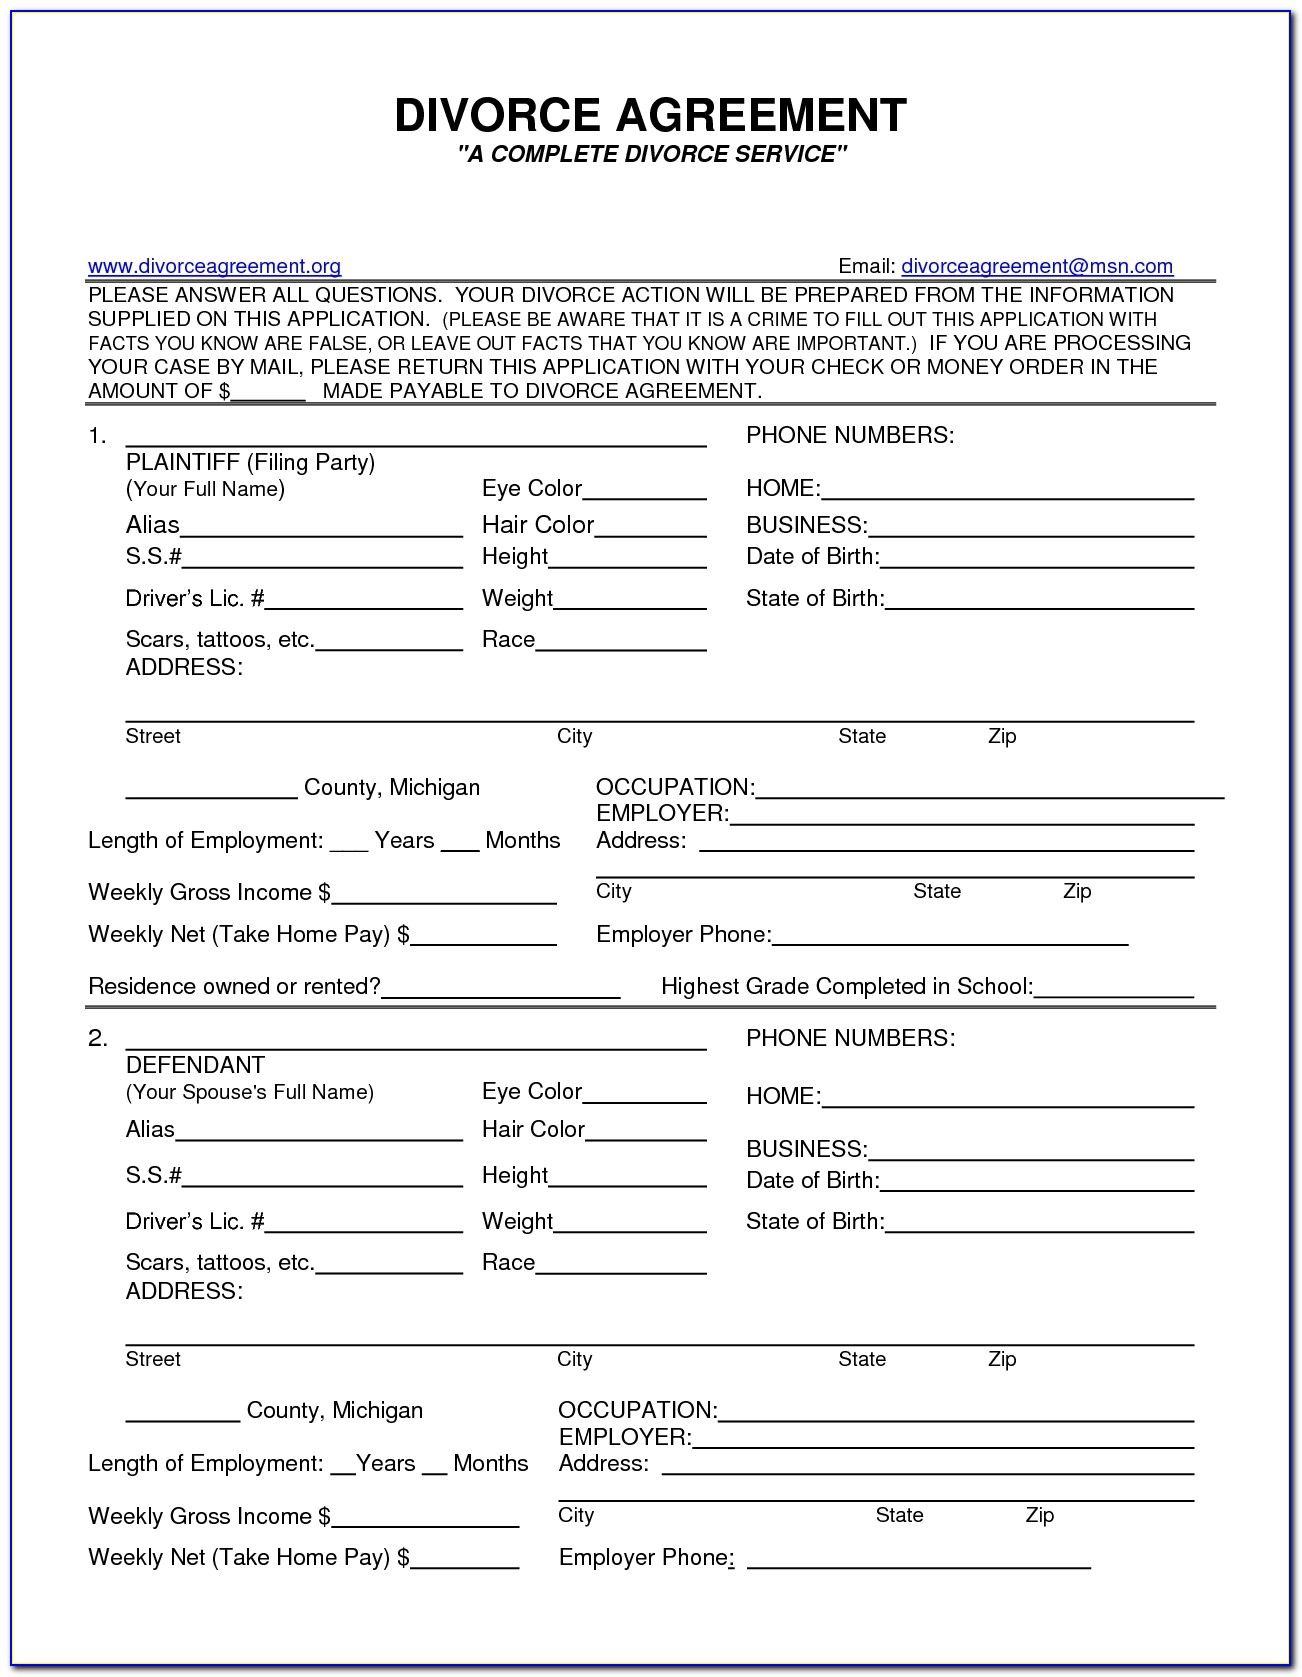 Fake Divorce Papers Pdf Worksheet To Print Fake Divorce